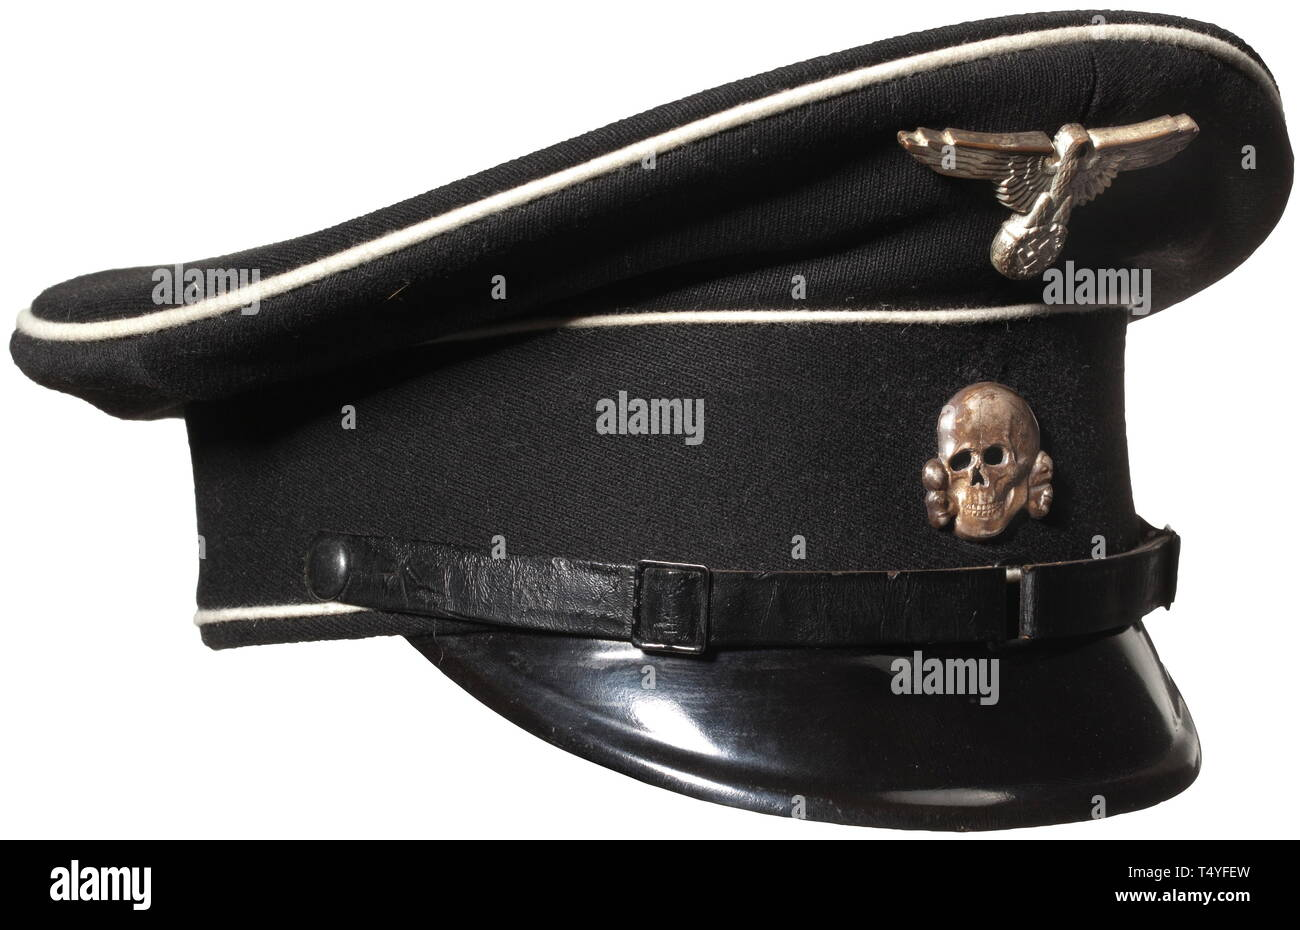 "A visor cap for enlisted men and NCO`s of the Allgemeine SS. Fine black cloth with white piping, visor with ink stamping ""SS RZM"", regulation black patent leather chin strap, early cupal insignia. The interior with the typical brown waterproof inner liner, maker's label with gold-stamped runes, brown sweat band with RZM-tag. Light signs of use. historic, historical, 20th century, 1930s, 1940s, Waffen-SS, armed division of the SS, armed service, armed services, NS, National Socialism, Nazism, Third Reich, German Reich, Germany, military, militaria, utensil, piece of equipmen, Editorial-Use-Only Stock Photo"